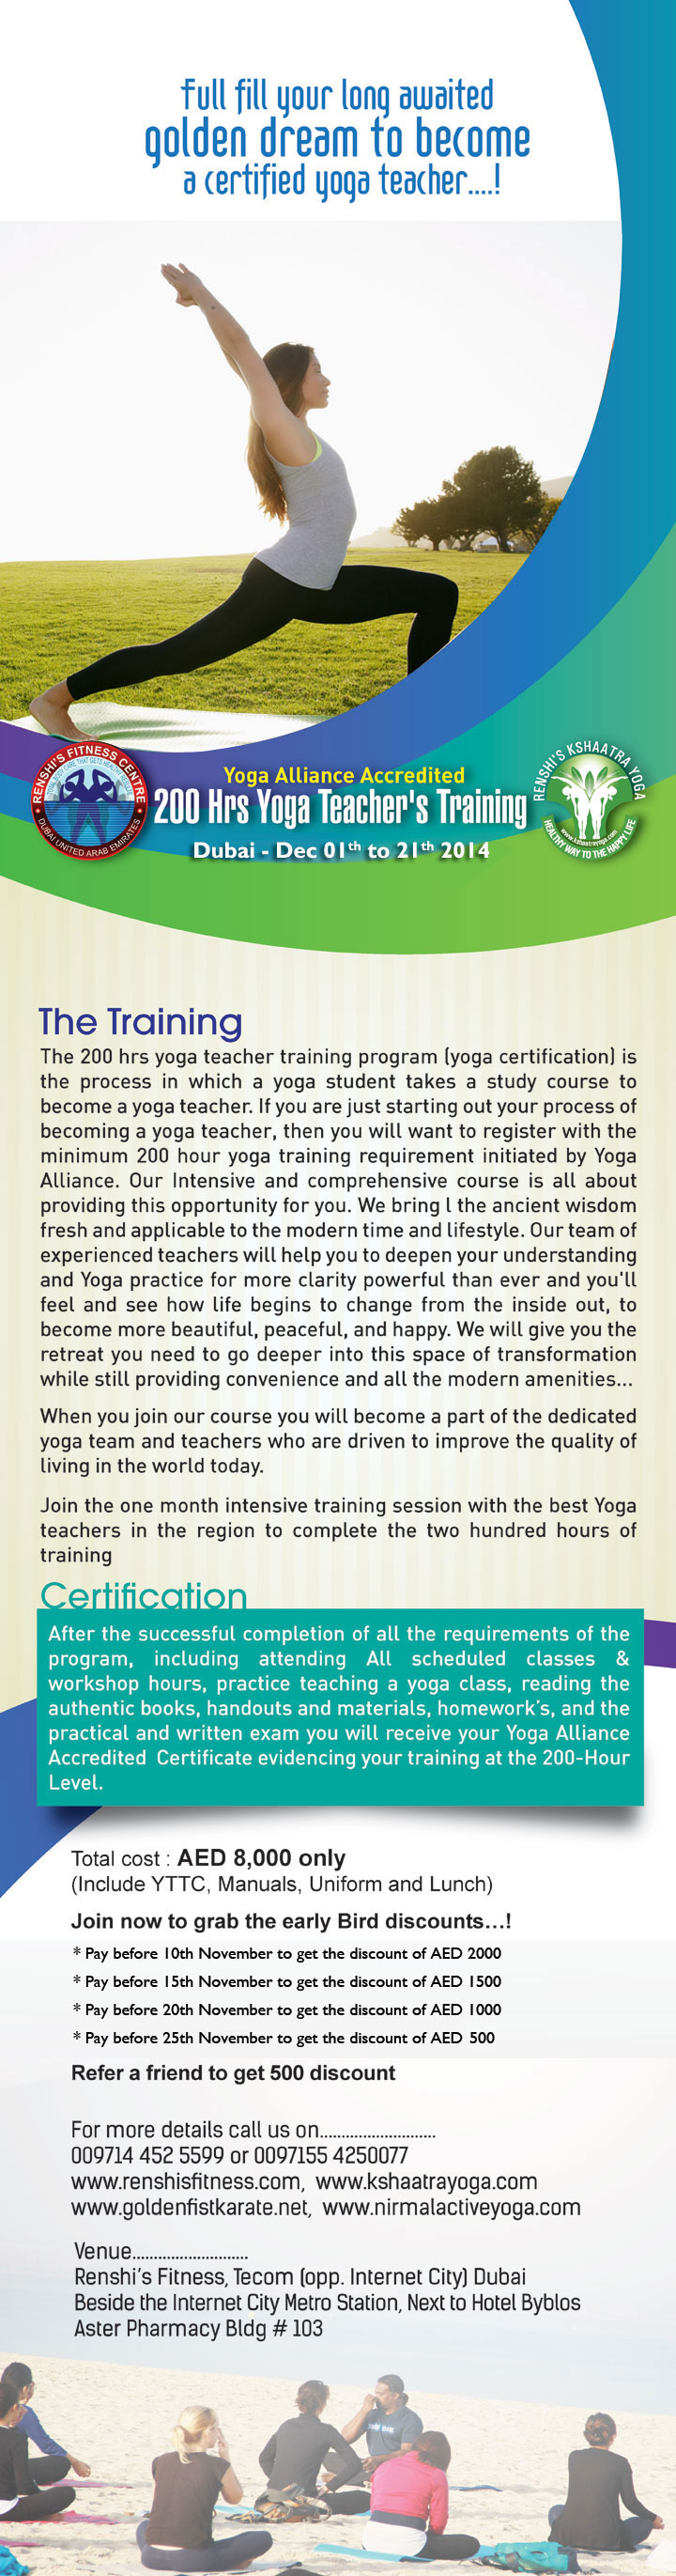 Yoga Teacher Training 2014 Dubai, UAE